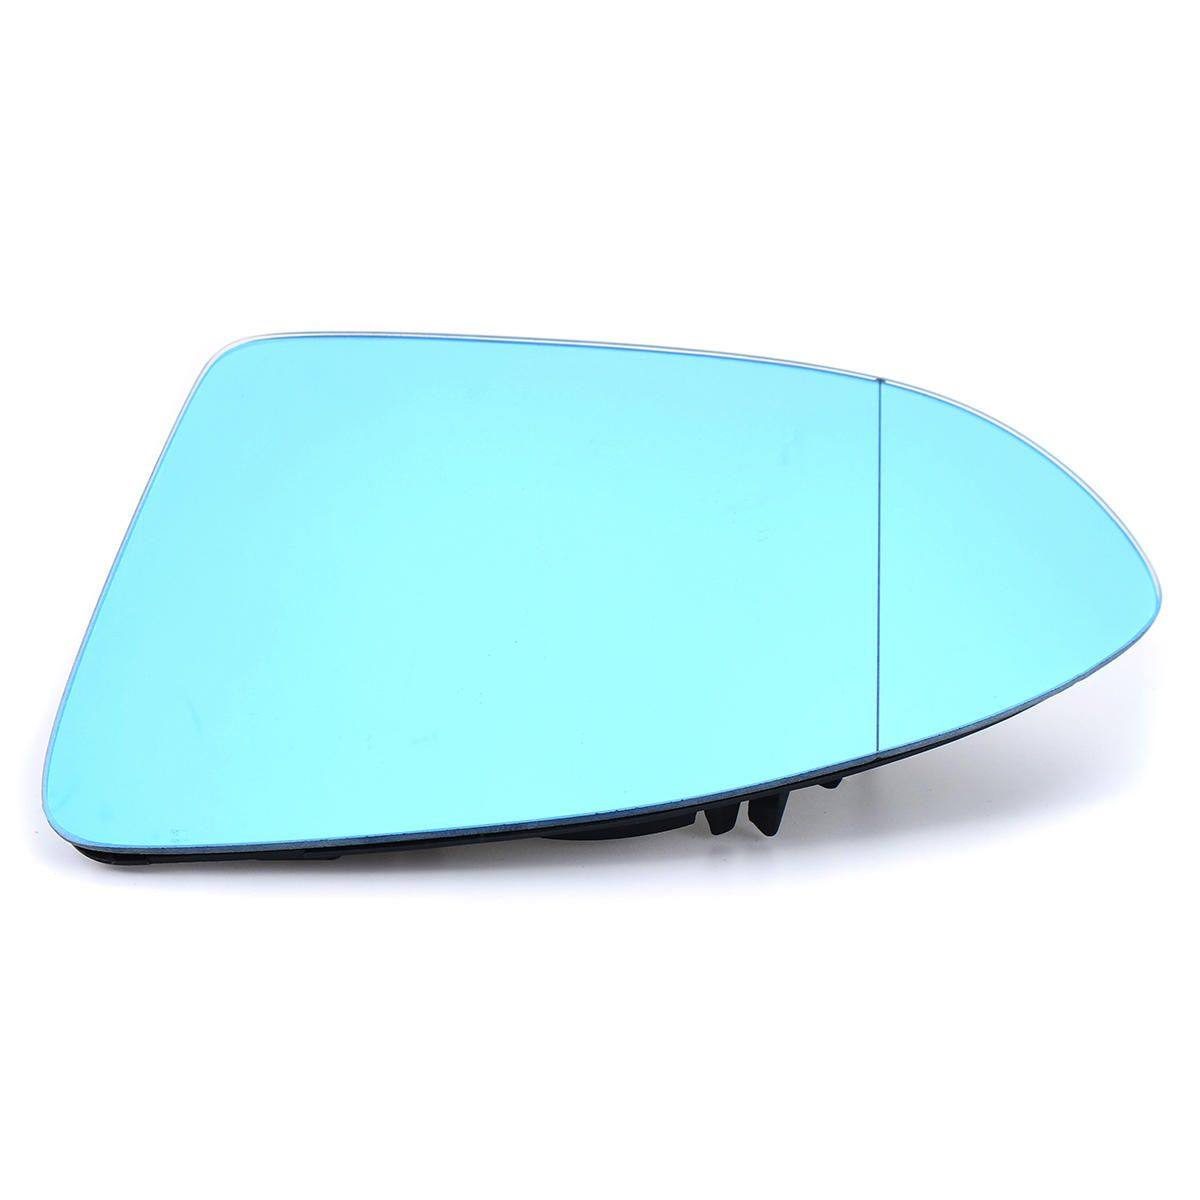 Car door wing mirror glass tinted blue heated left side for vw golf car door wing mirror glass tinted blue heated left side for vw golf 7 gti mk7 planetlyrics Image collections